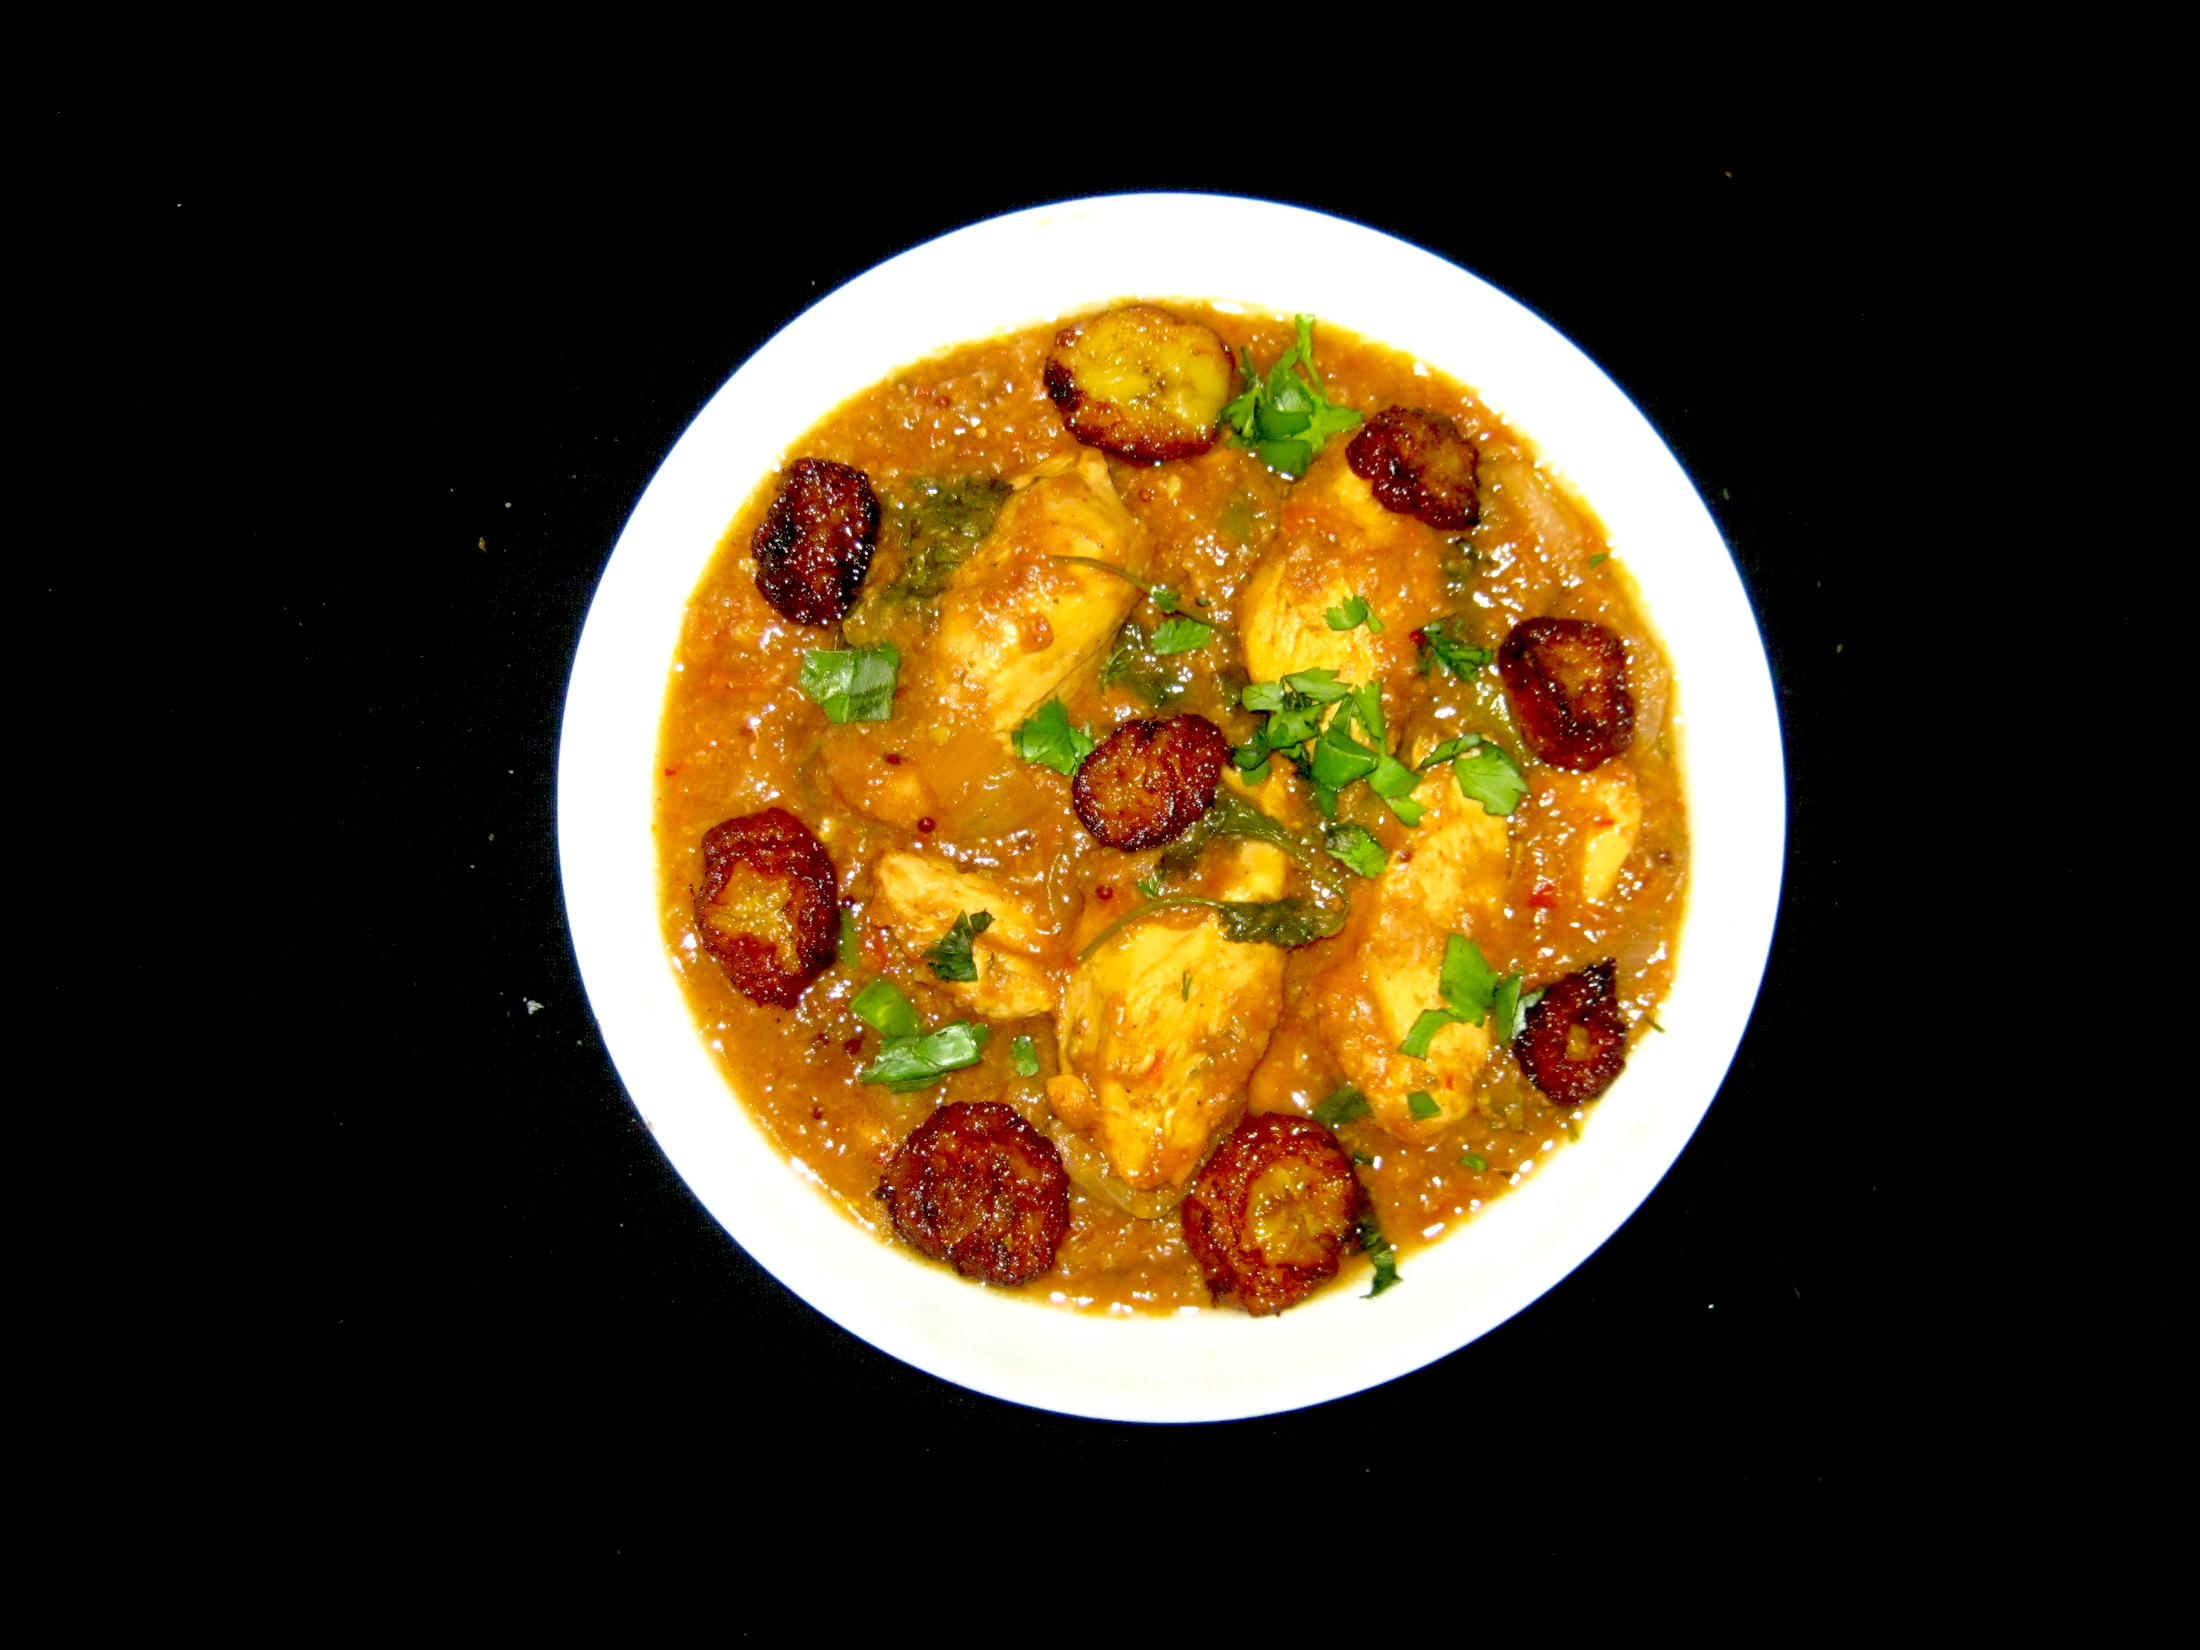 Green banana and chicken curry served in a white bowl garnished with coriander leaves and fried banana slices